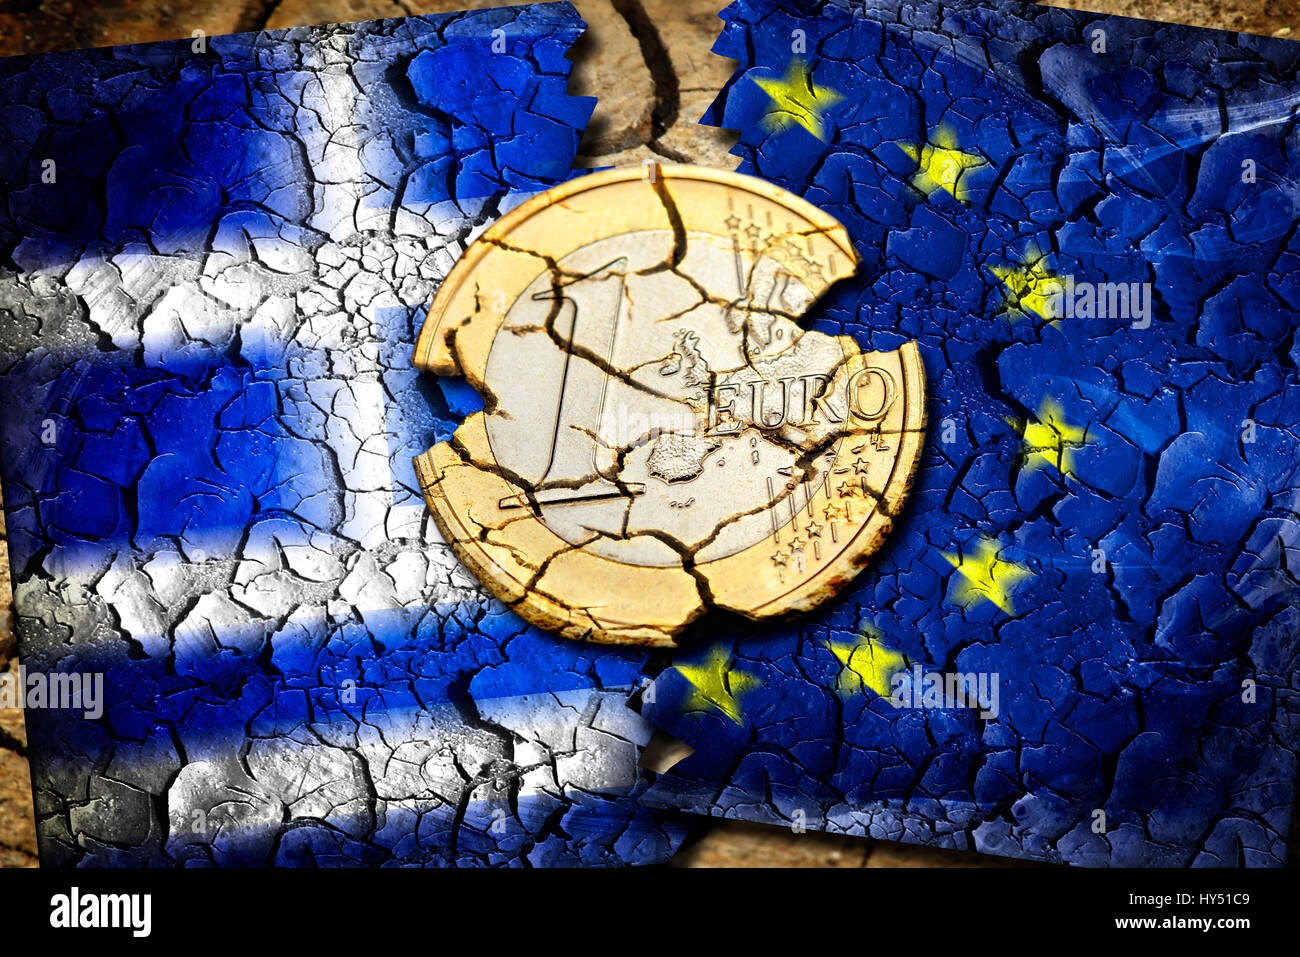 Euro-coin one with tears before Greece and EU flag, symbolic photo Grexit, Ein-Euro-Muenze mit Rissen vor Griechenland Stock Photo